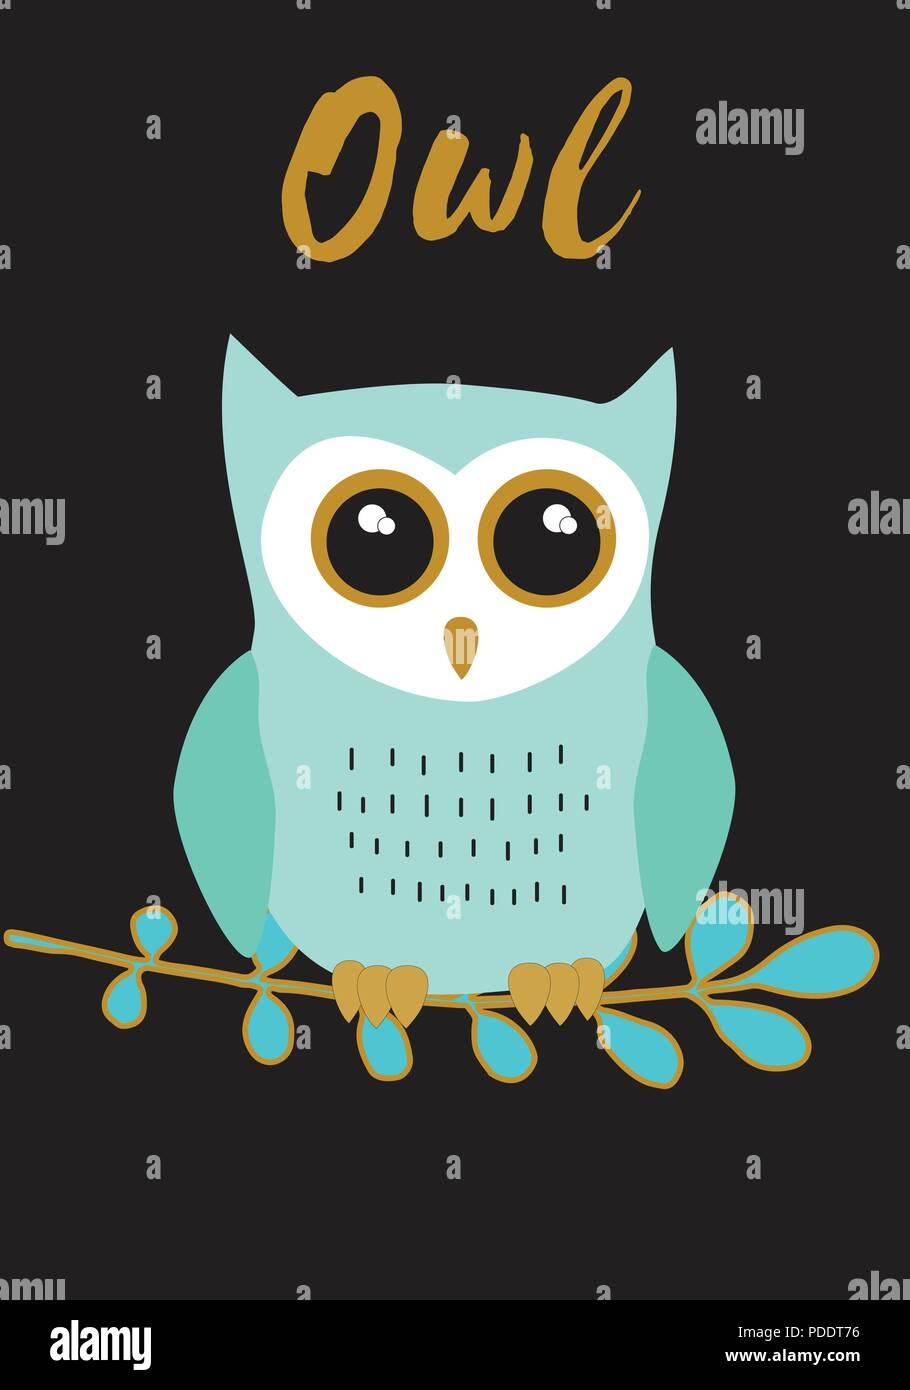 Owl green with black,white and gold metallic colors palette ...